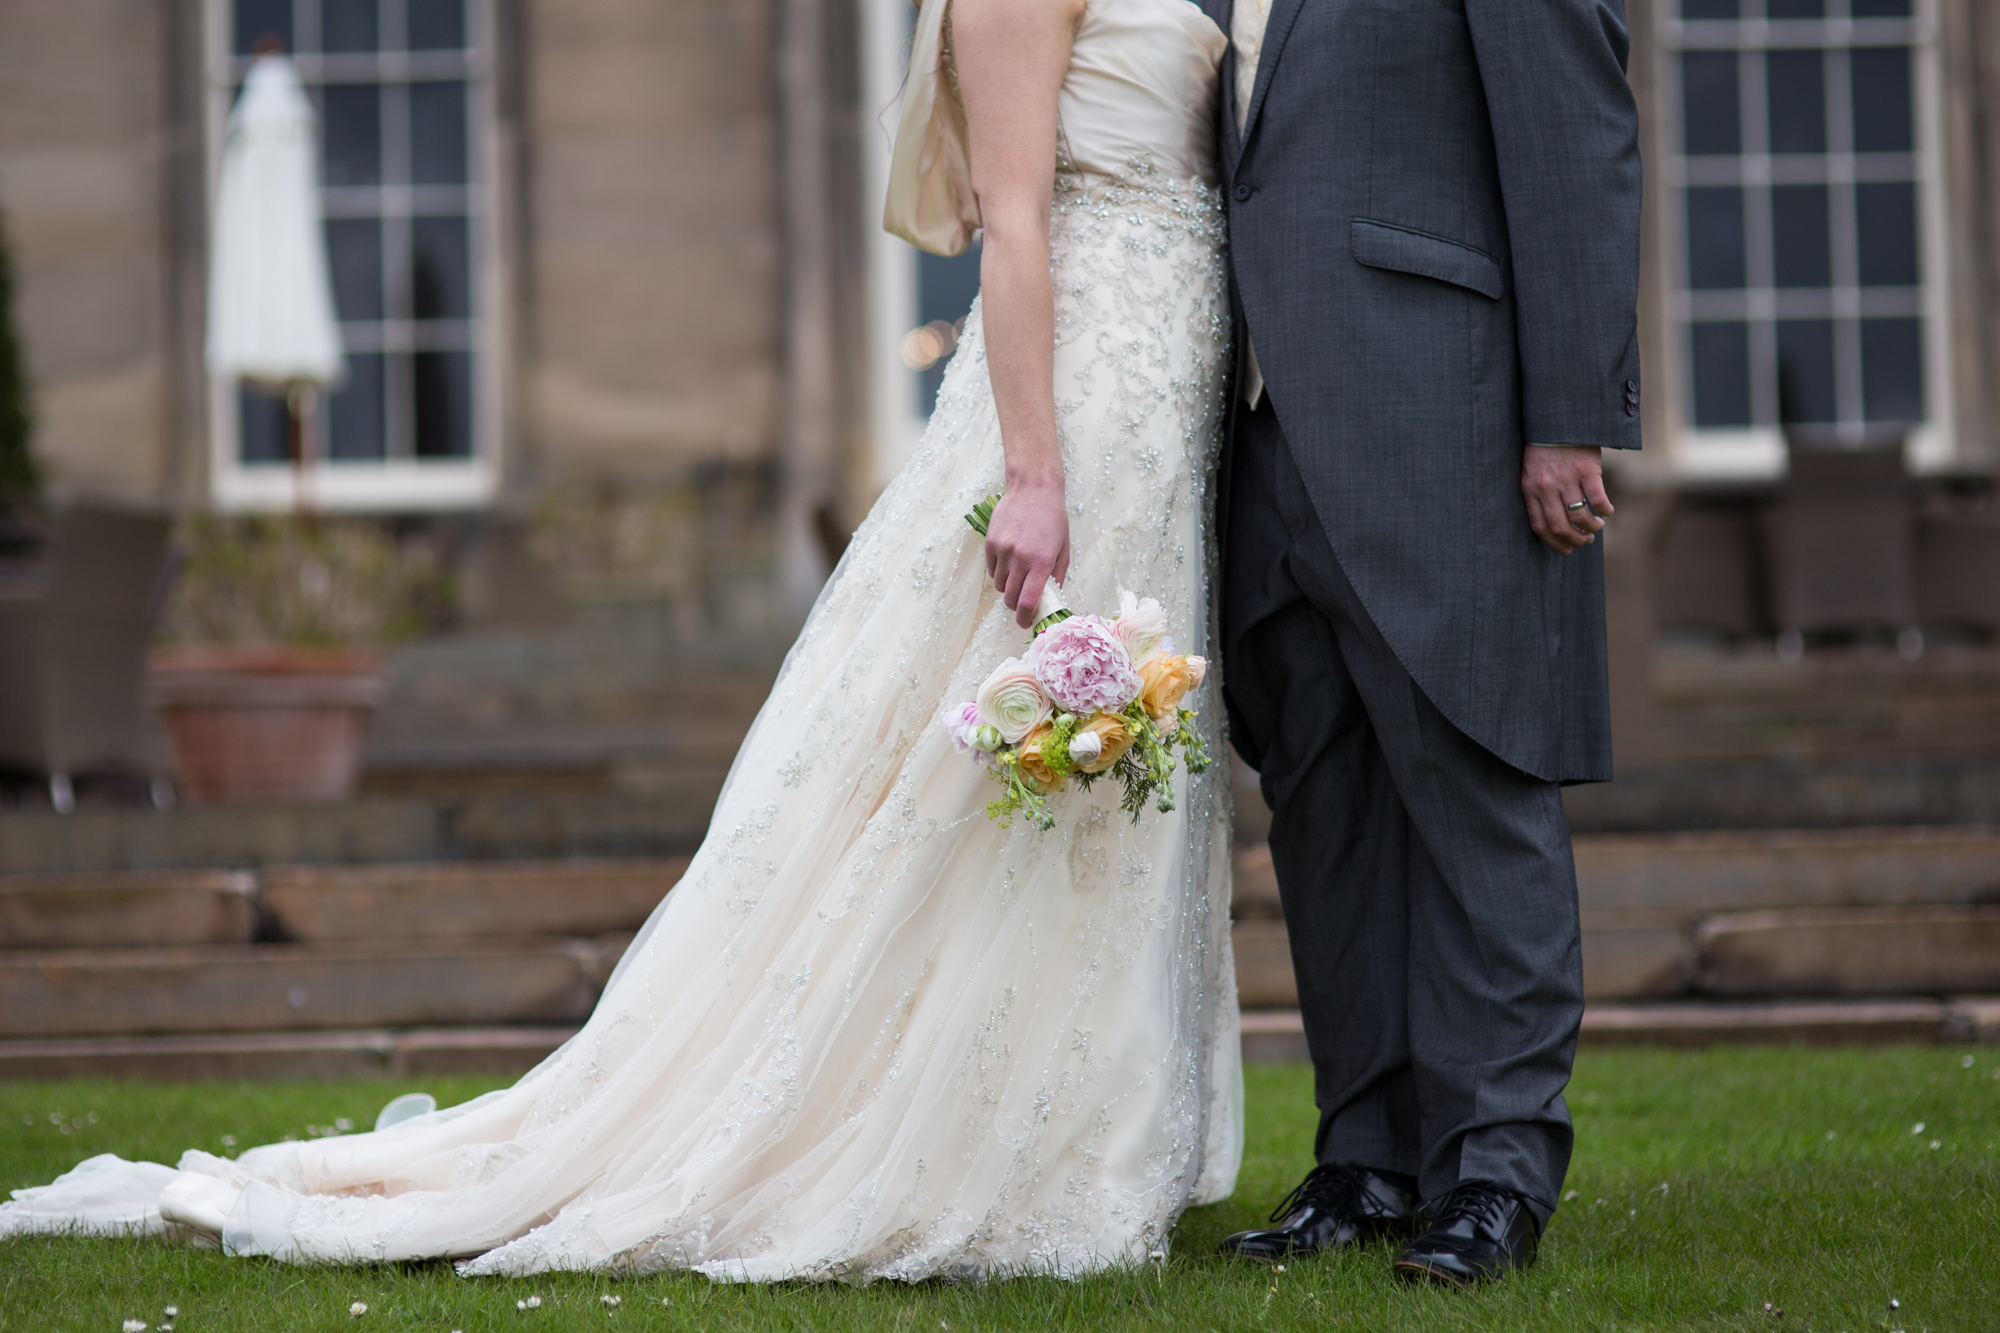 wynyard hall wedding photographer duncan mccall-1031.jpg